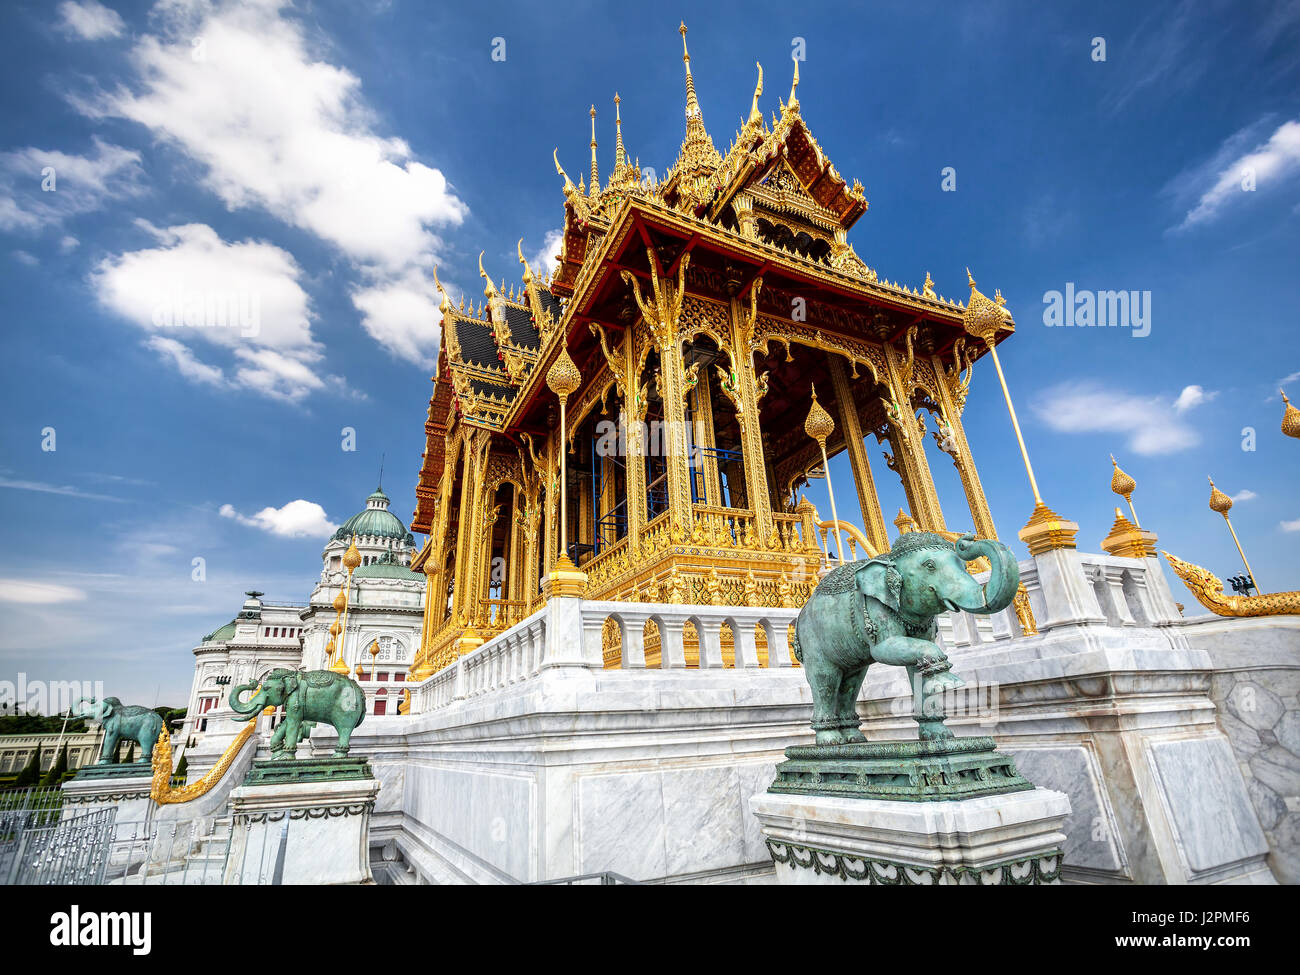 The Ananta Samakhom Throne Hall in Thai Royal Dusit Palace and green Stock Ph...